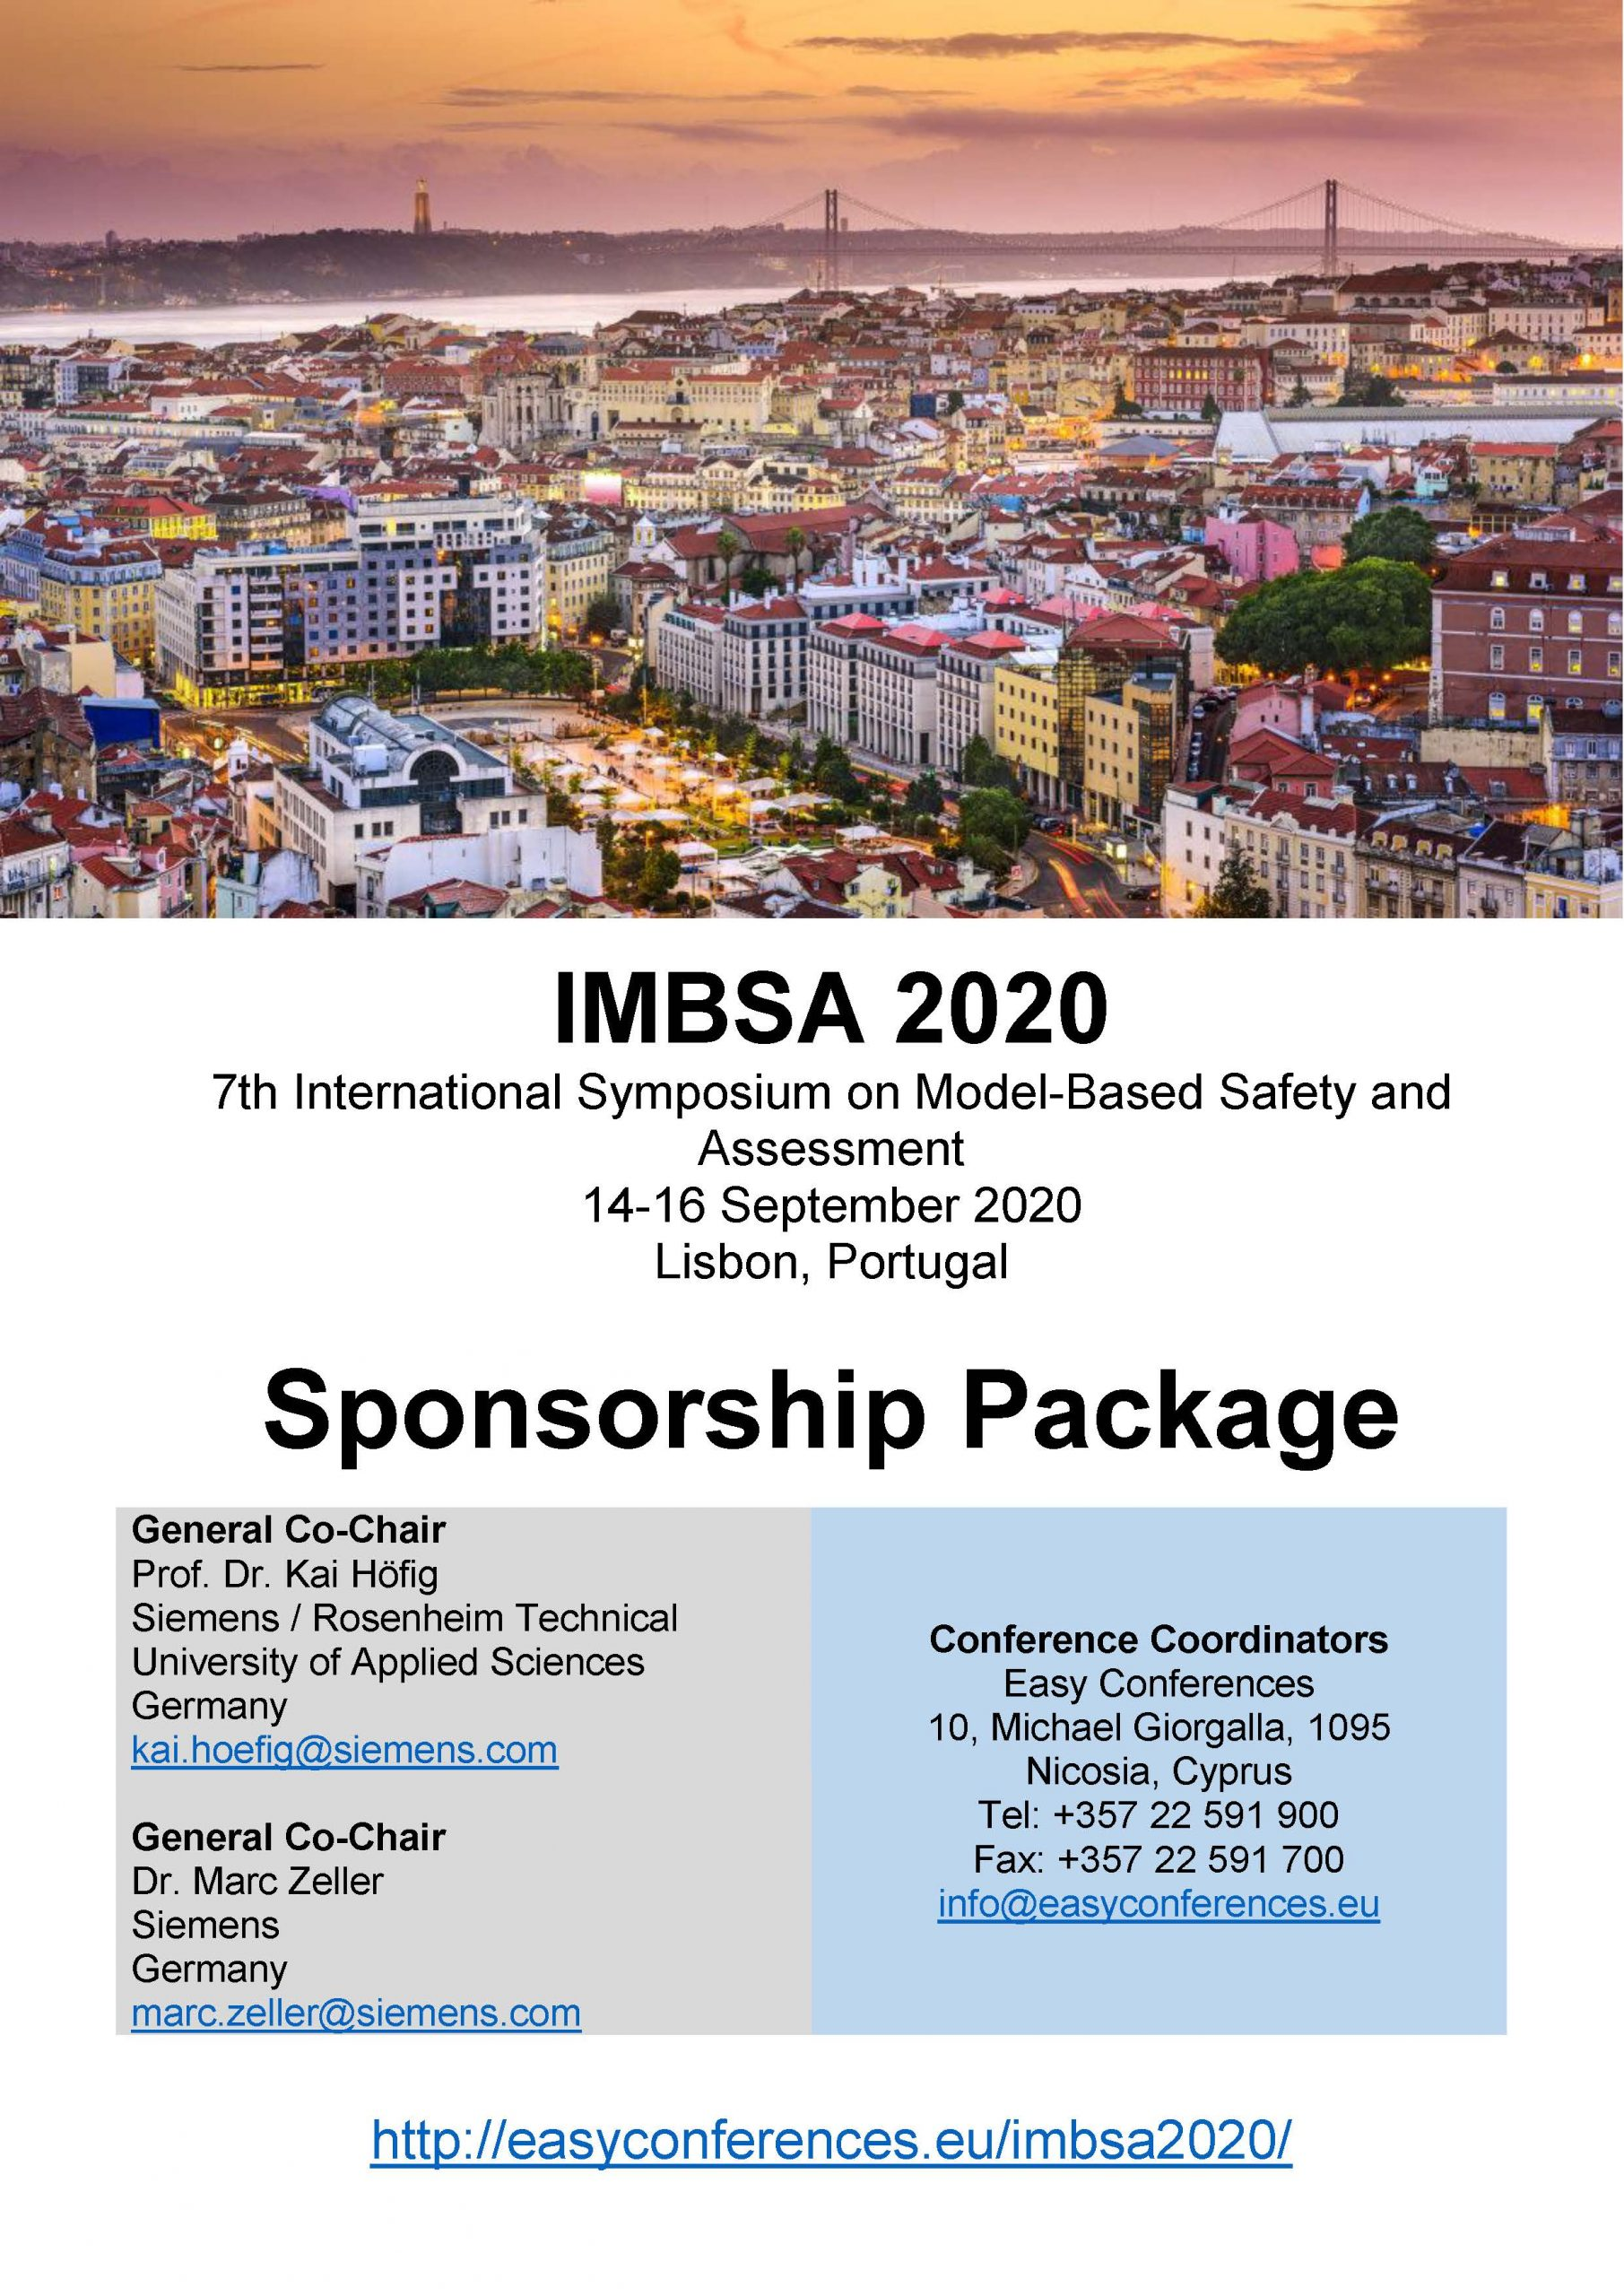 IMBSA 2020 Sponsorship Package_11 02 2020_Page_1